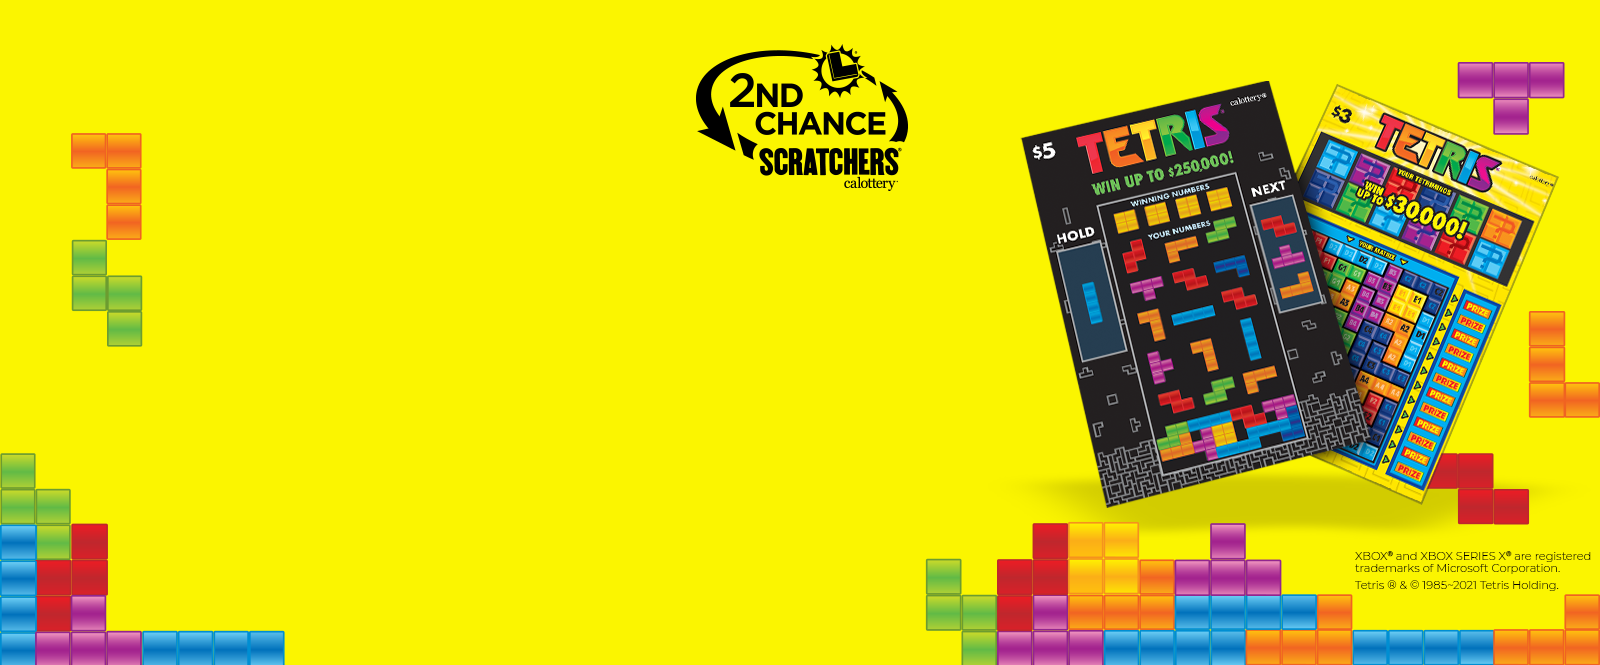 Tetris scratchers on a yellow background with 2nd chance logo